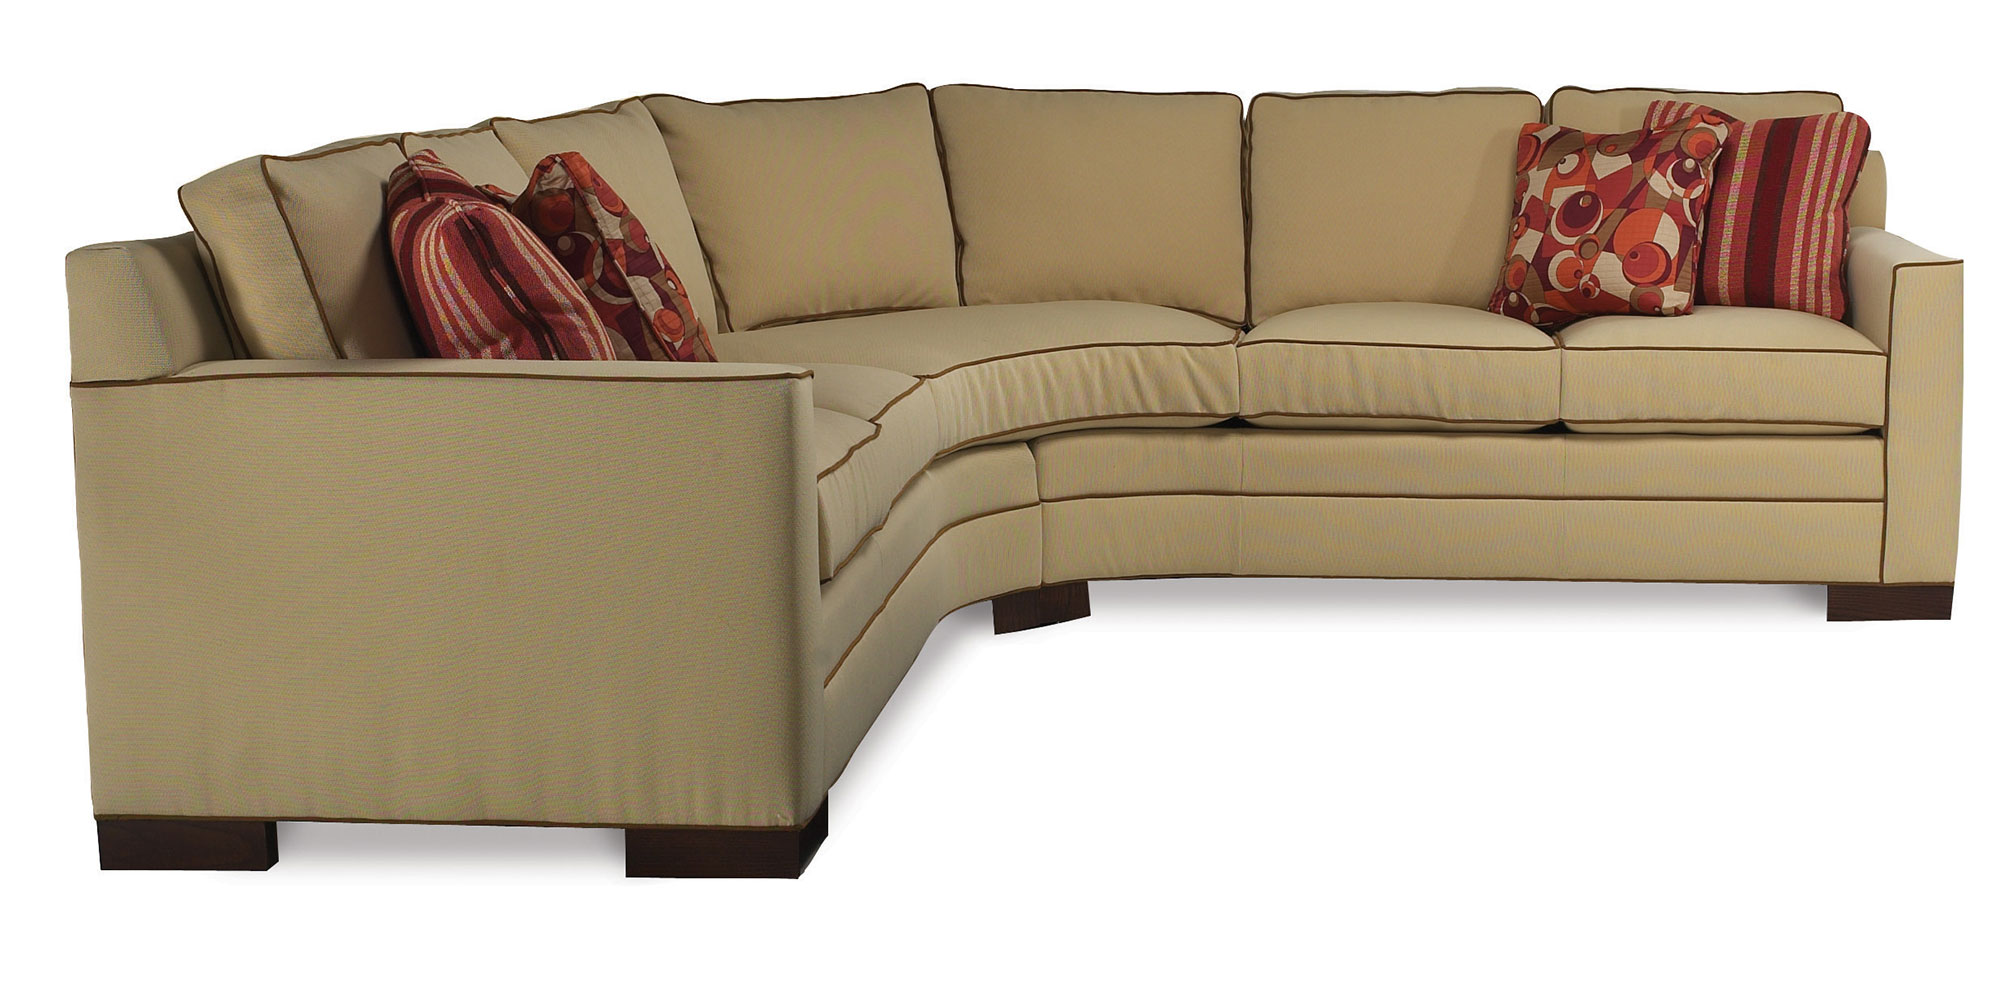 High quality sectional sofa sectional sofa design quality for Affordable furniture 610